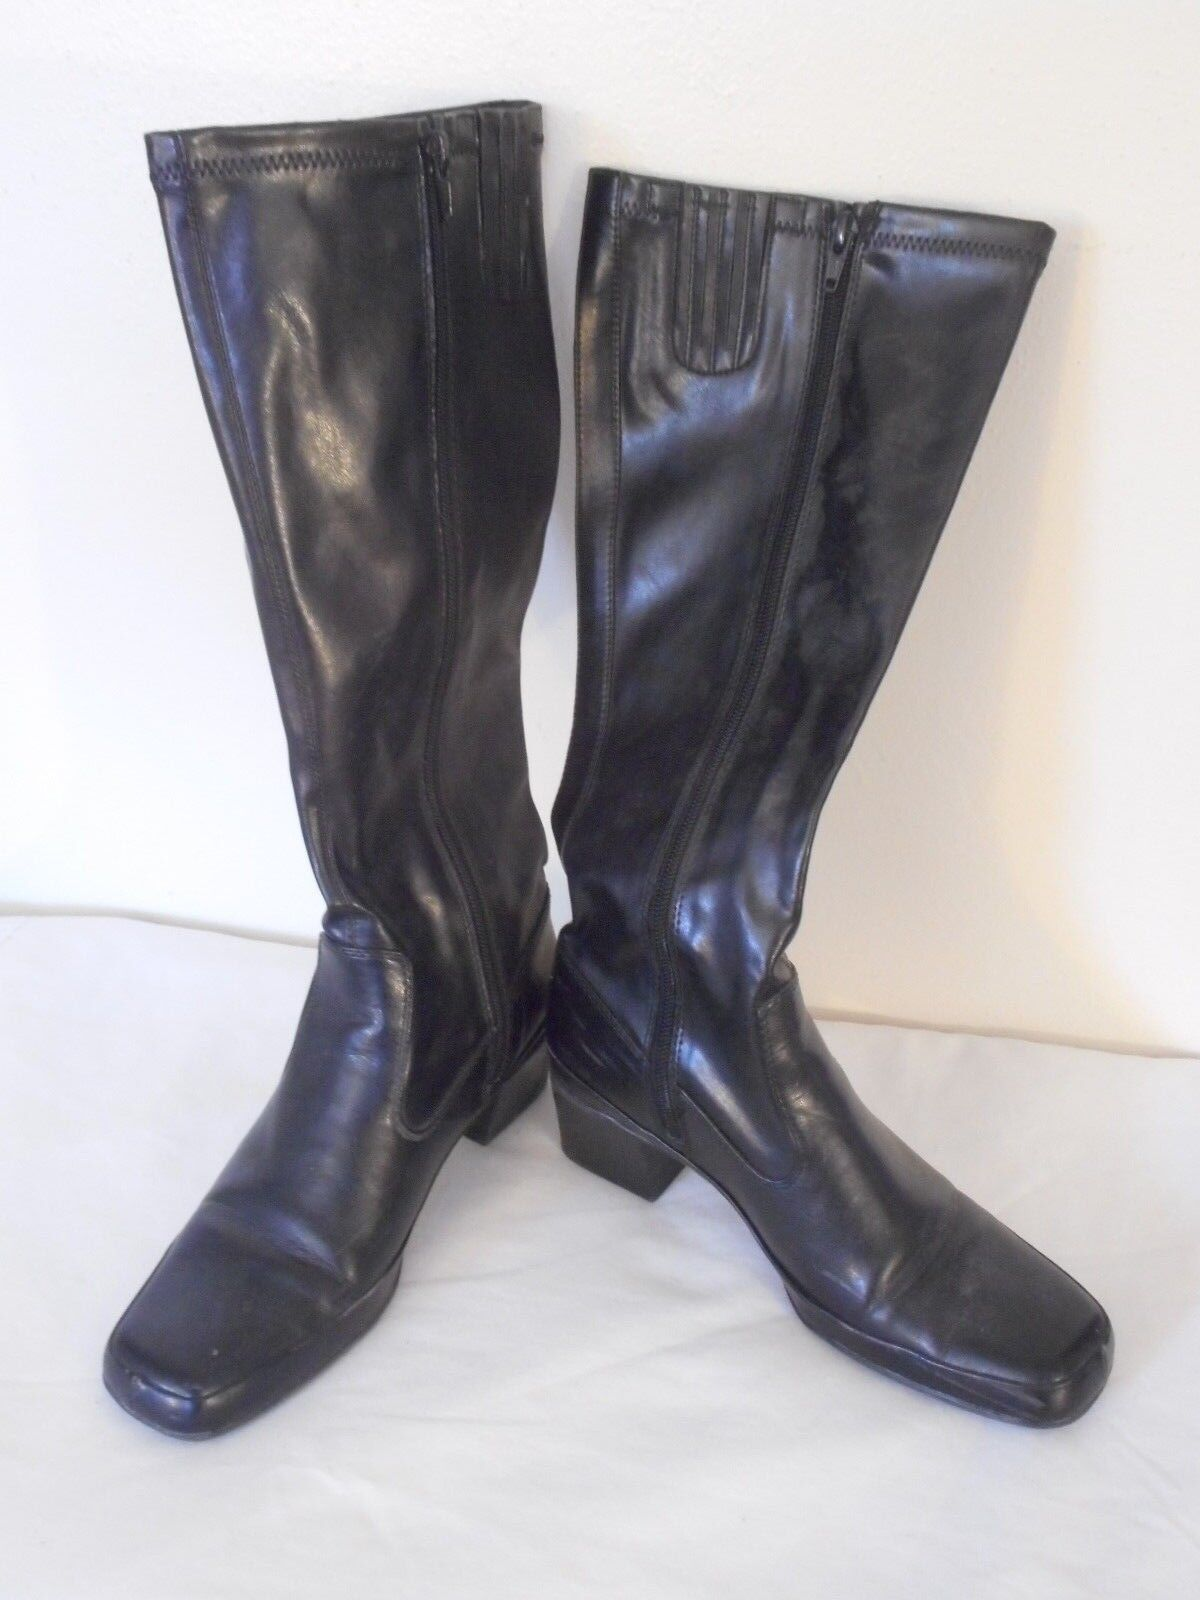 Black Faux Leather Calf High 2 inch heel Boot Size 6.5